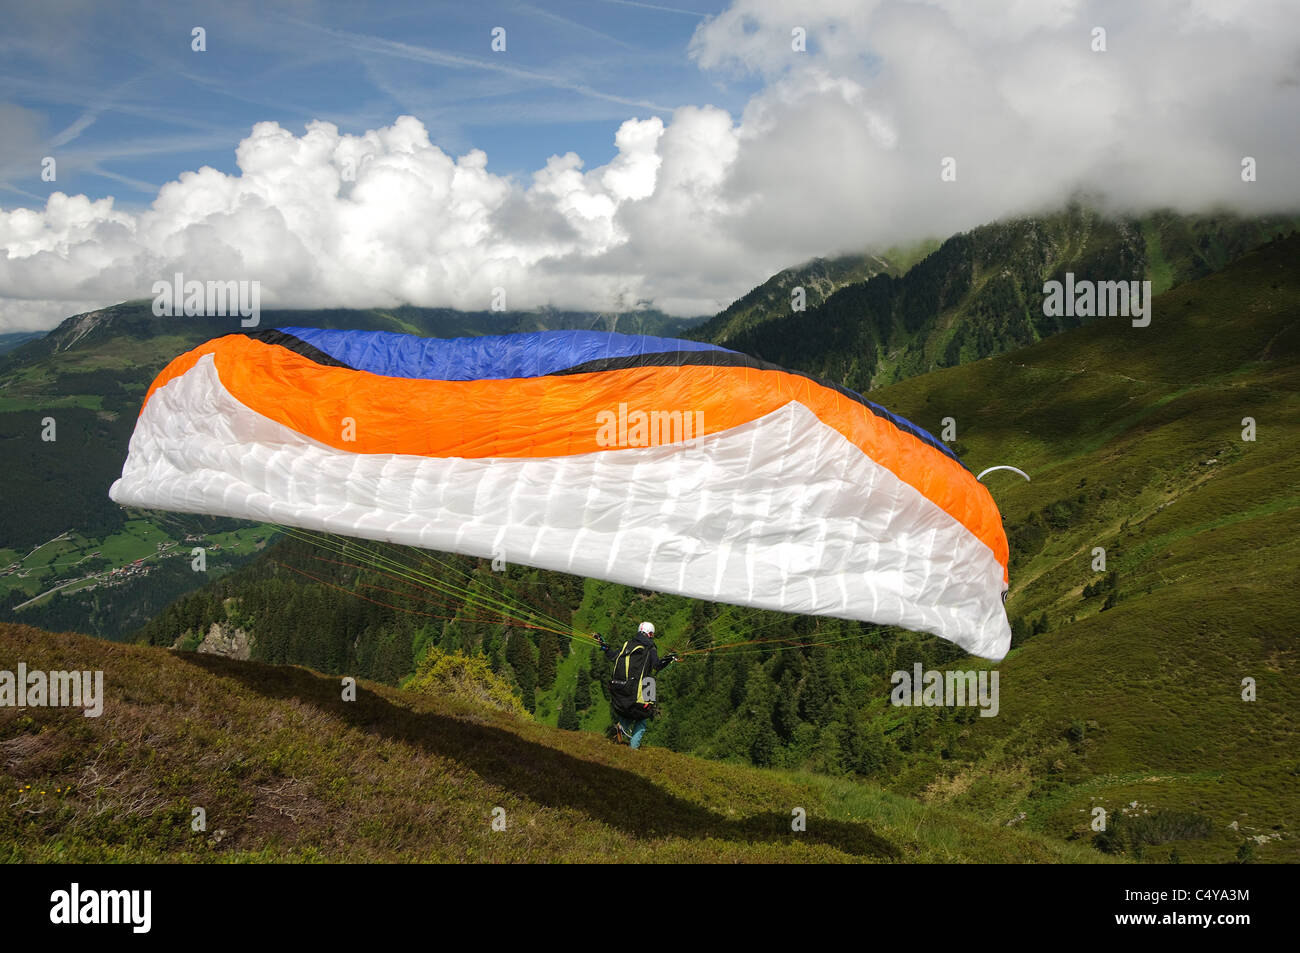 Zillertal, Tyrol, Austria Parachuting off the cliff - Stock Image